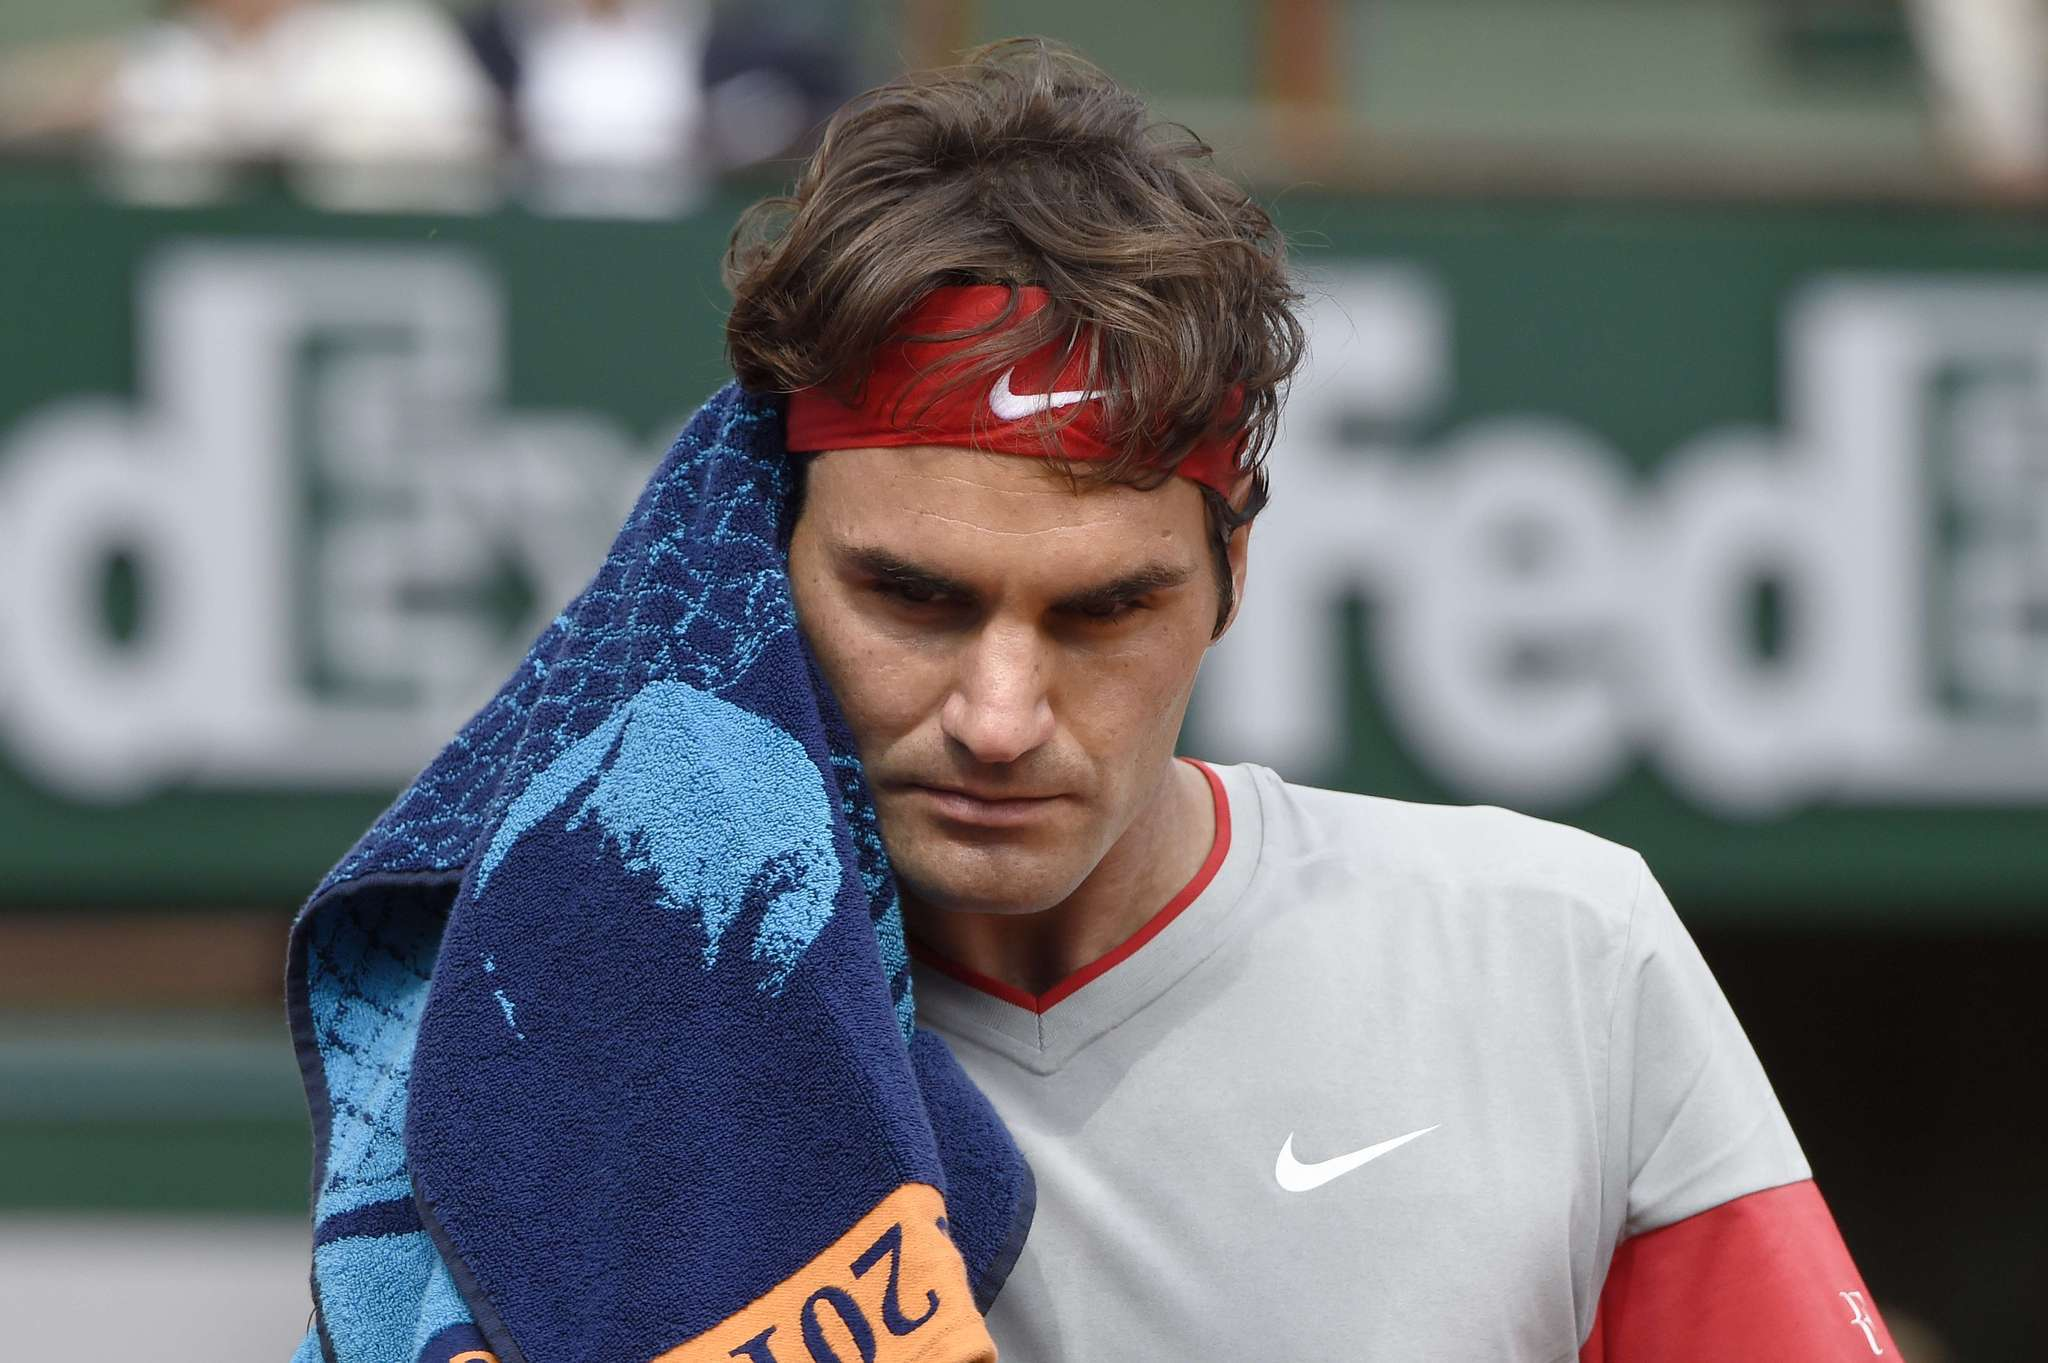 Roger Federer gestures during his French Open loss to Latvia's Ernests Gulbis.